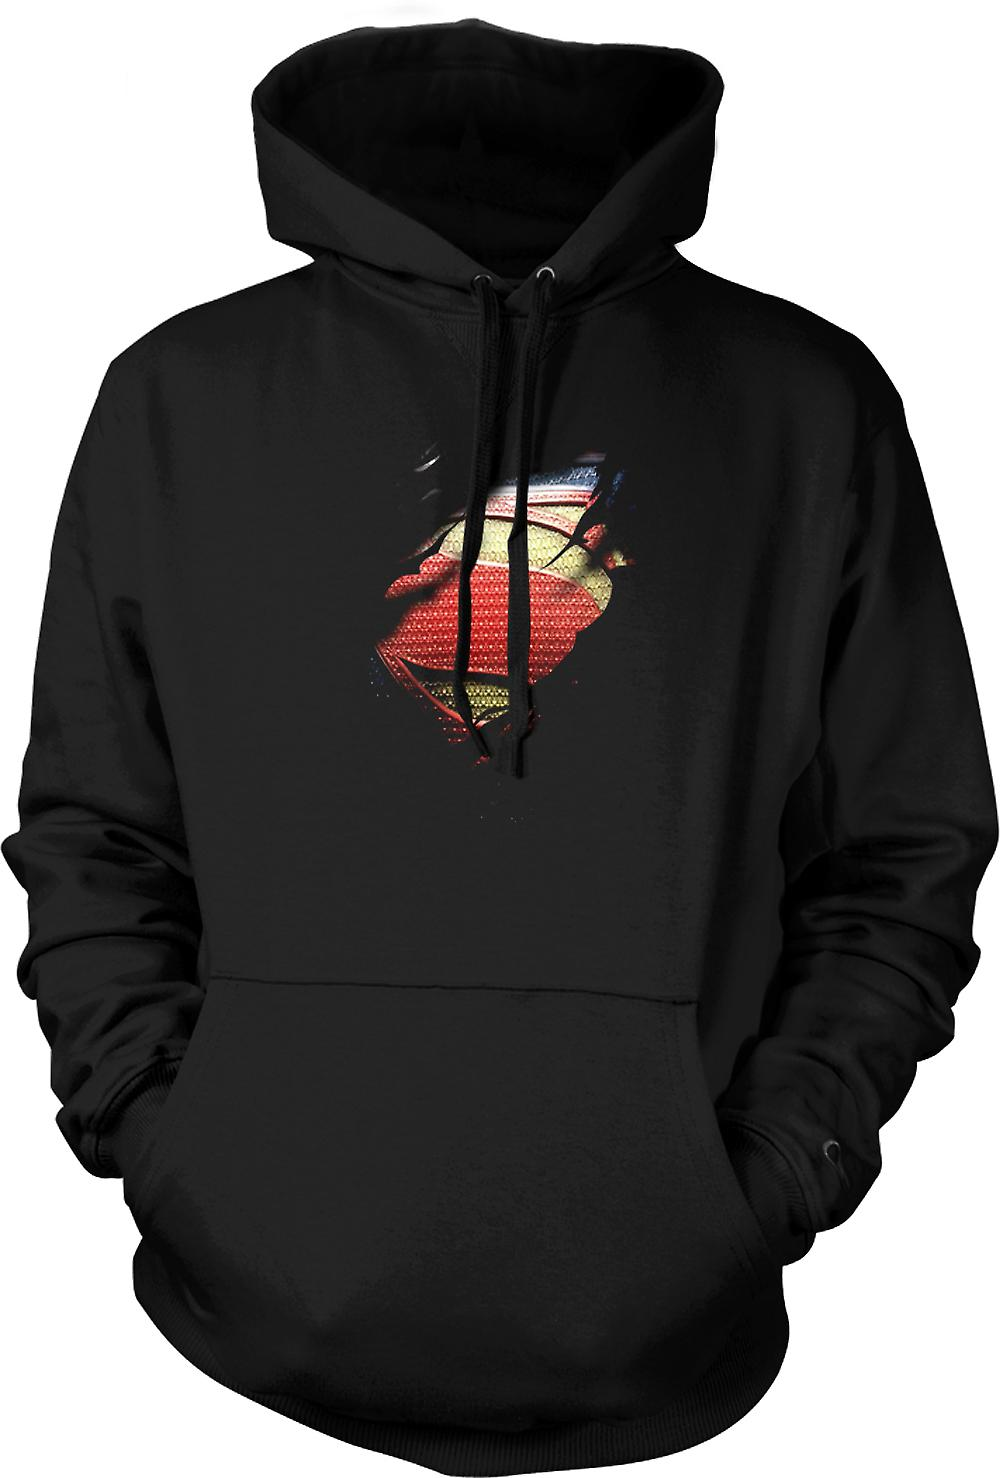 Mens Hoodie - New Super Man Costume - Superhero Ripped Design